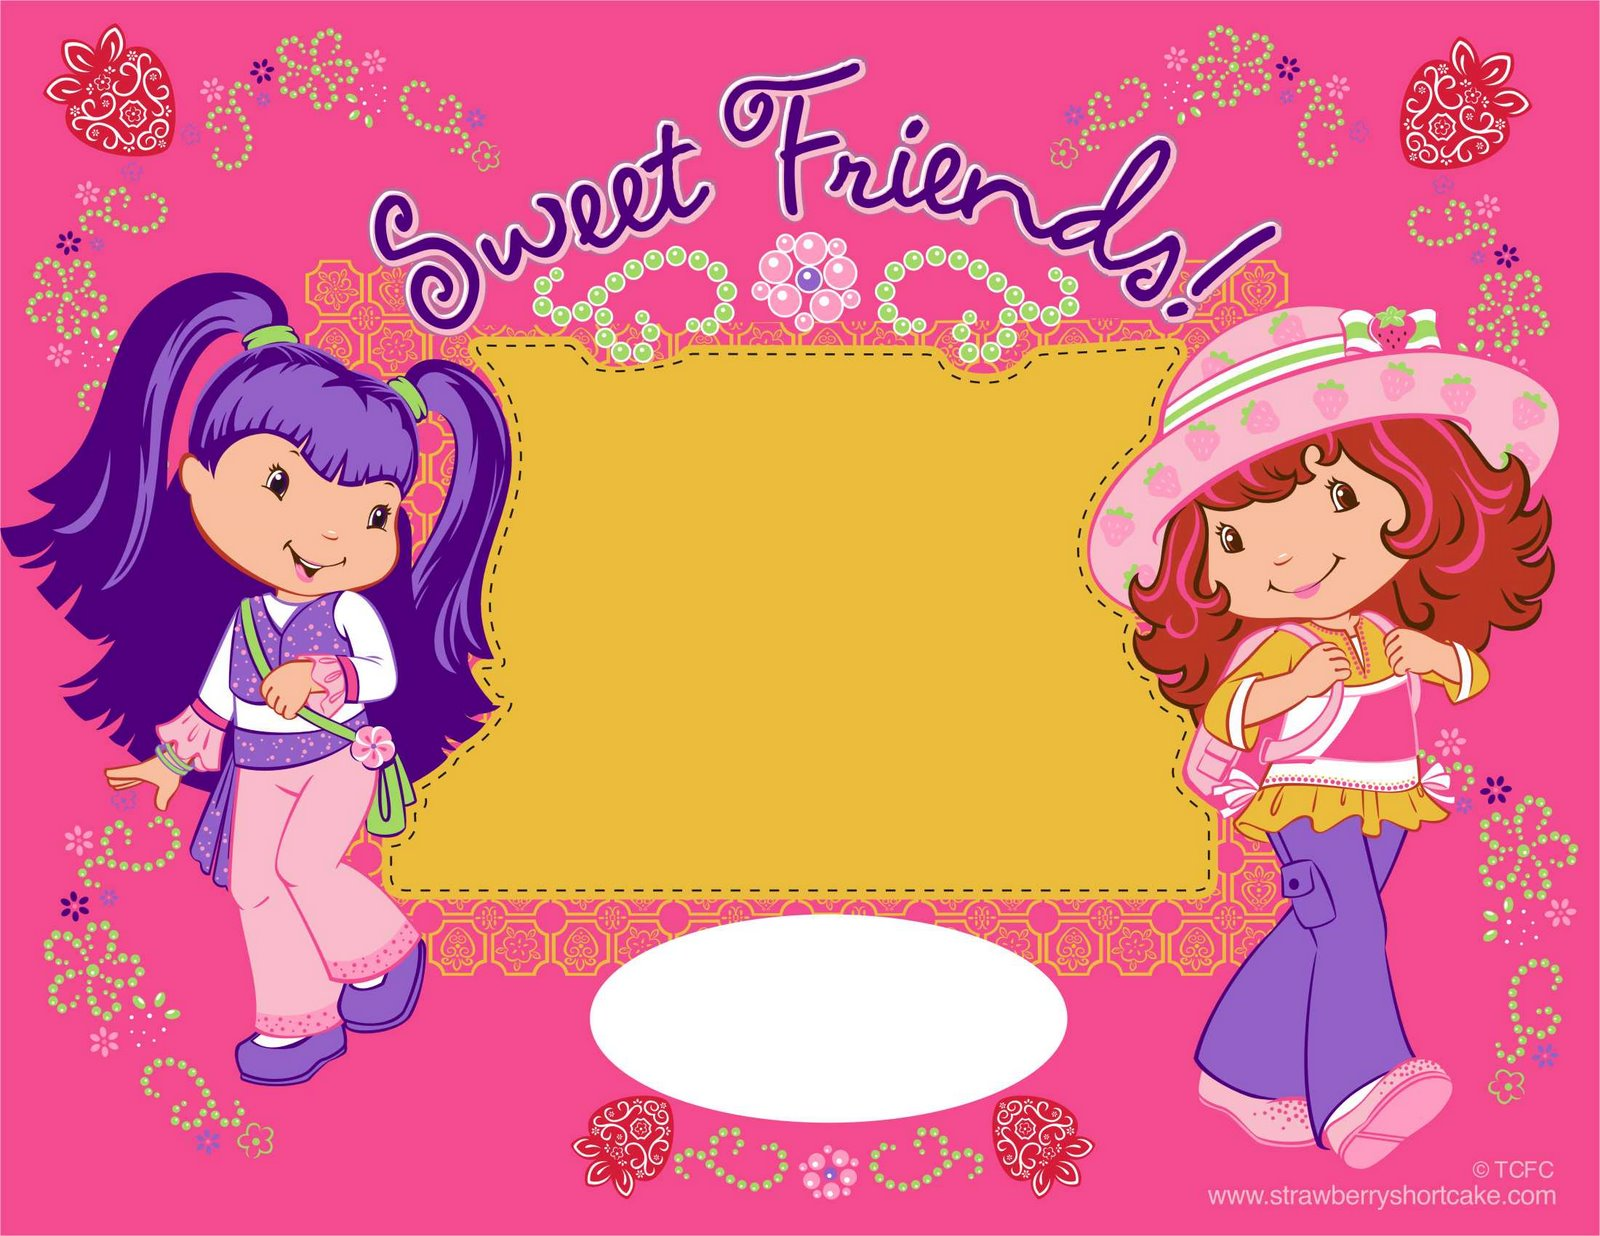 VIZIO BLOG: ROSITA FRESITA (STRAWBERRY SHORTCAKE) POSTERS Y WALLPAPERS